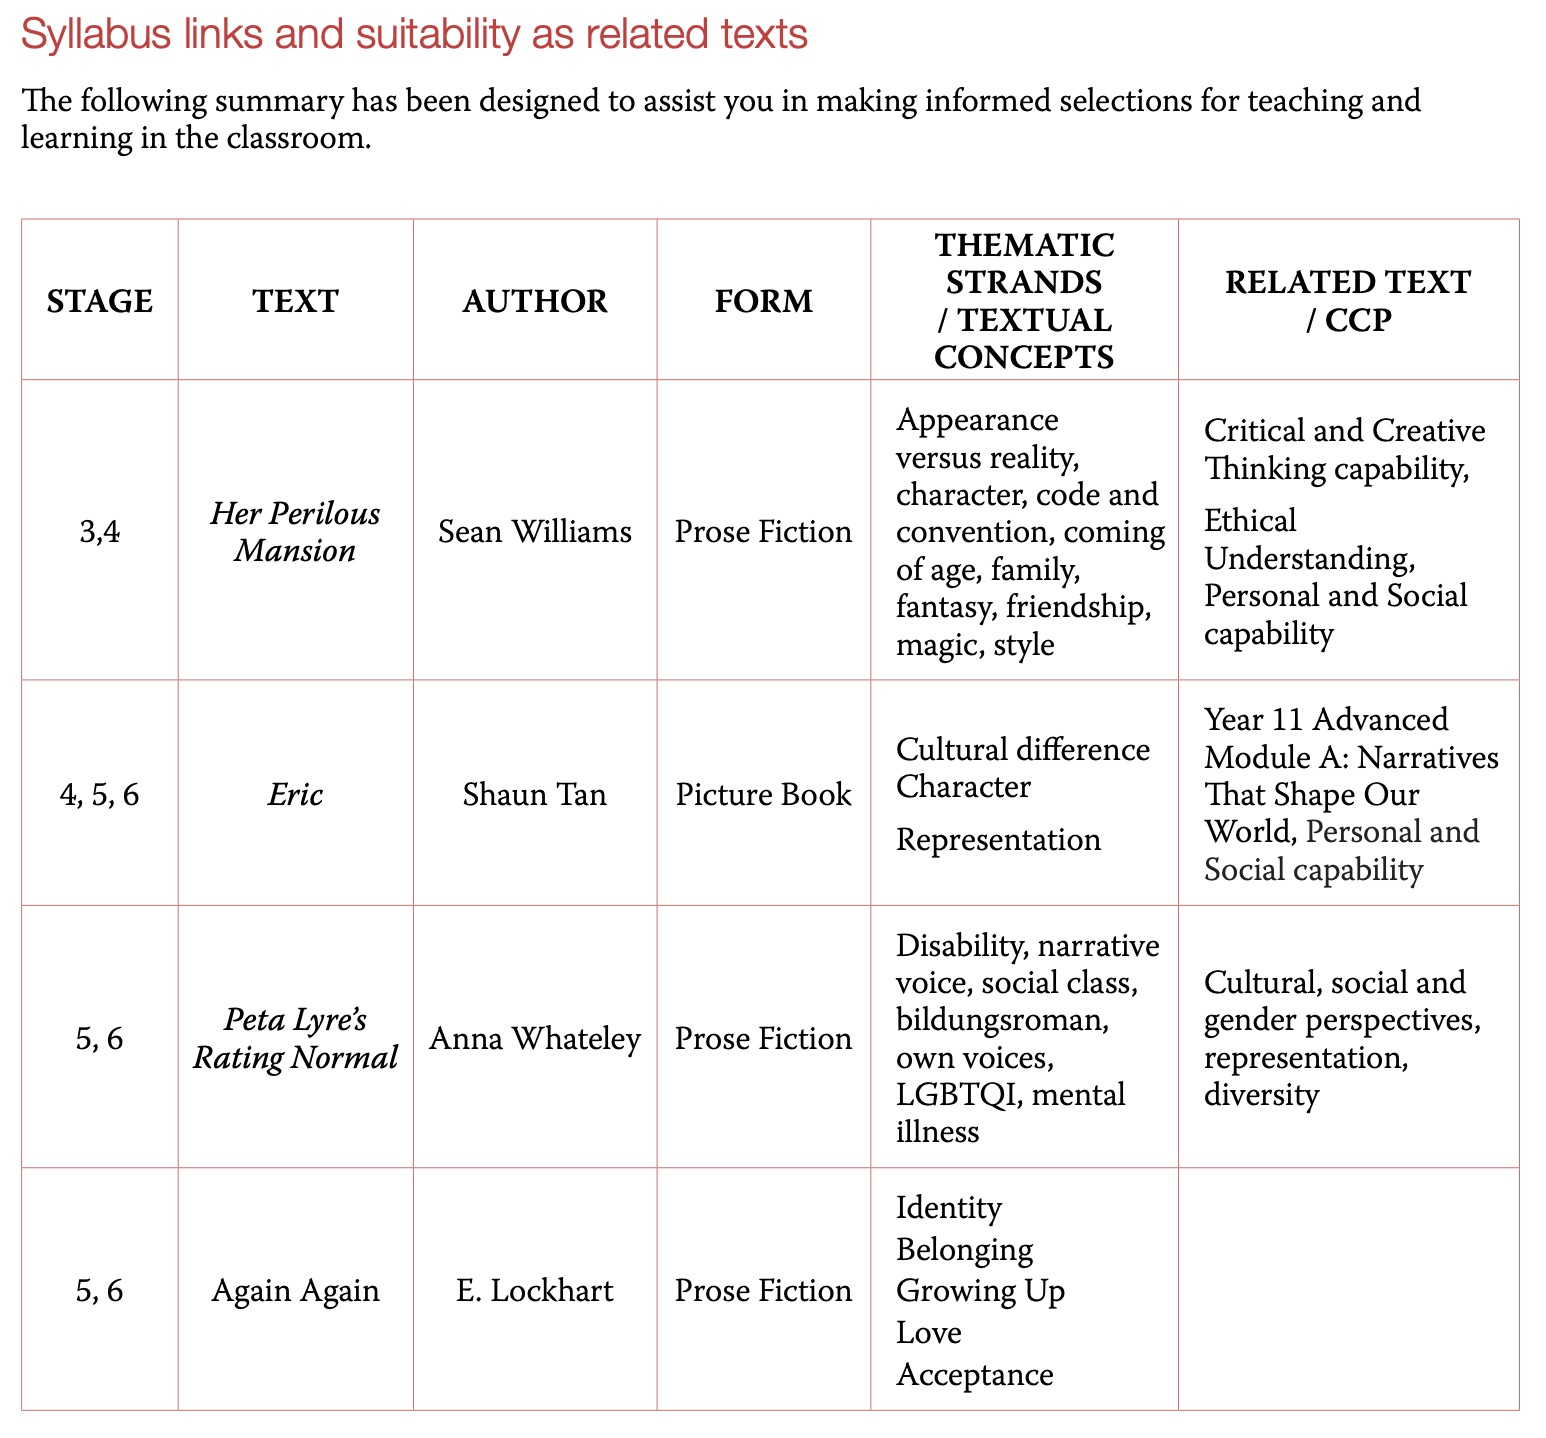 A text box details texts and their appropriate usage. for me: 5, 6 Peta Lyre's Rating Normal Anna Whateley Prose Fiction Disability, narrative voice, social class, bildungsroman, own voices, LGBTQI, mental illness Cultural, social and gender perspectives, representation, diversity.